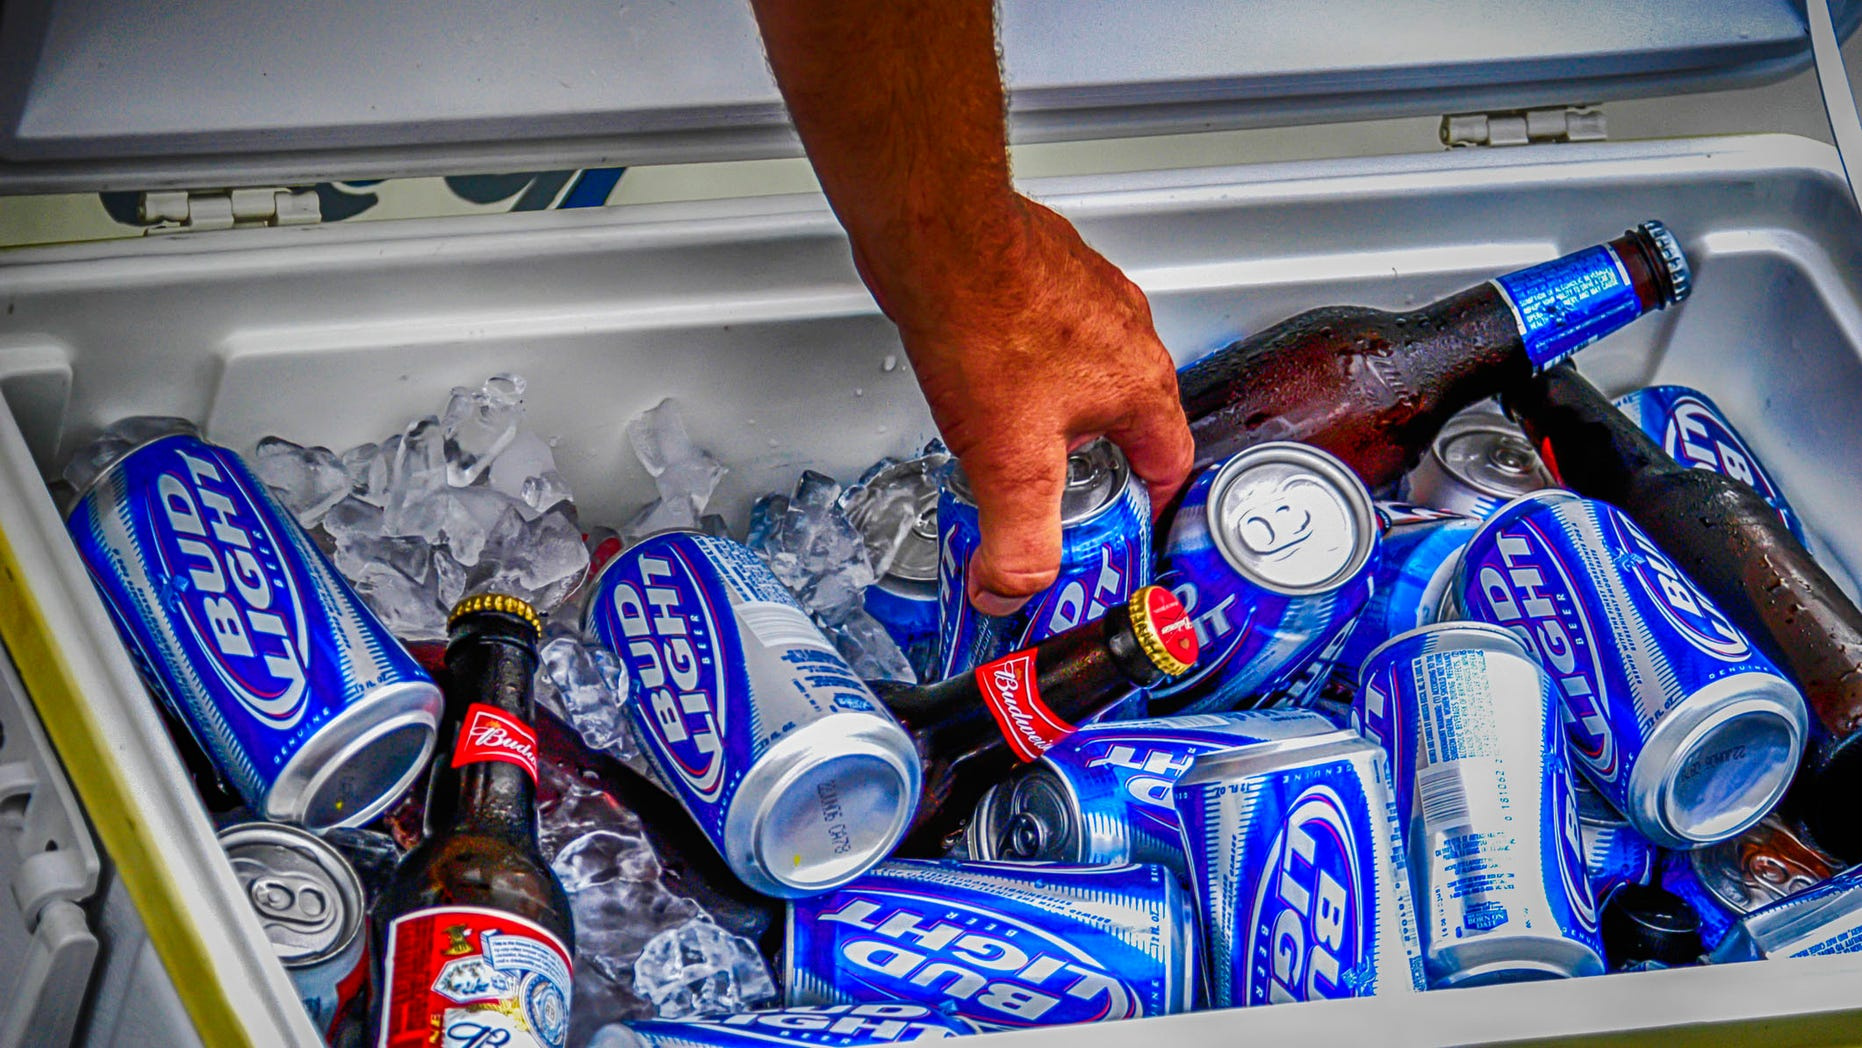 A free Bud Light has been offered to any alien that escapes Area 51 during the raid.